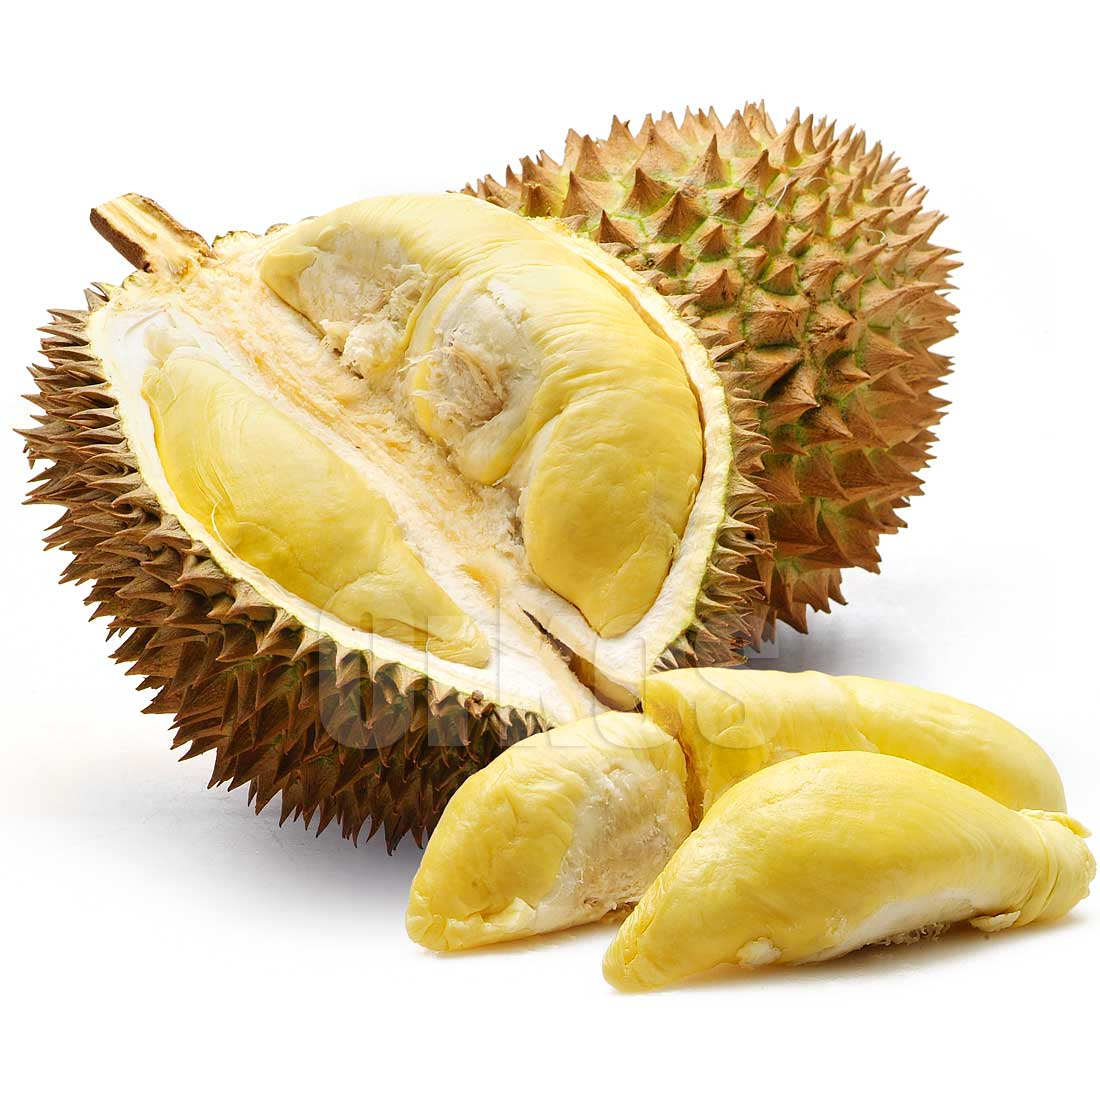 http://ktemoc.blogspot.it/2012/07/deceitful-durian-of-discord.html